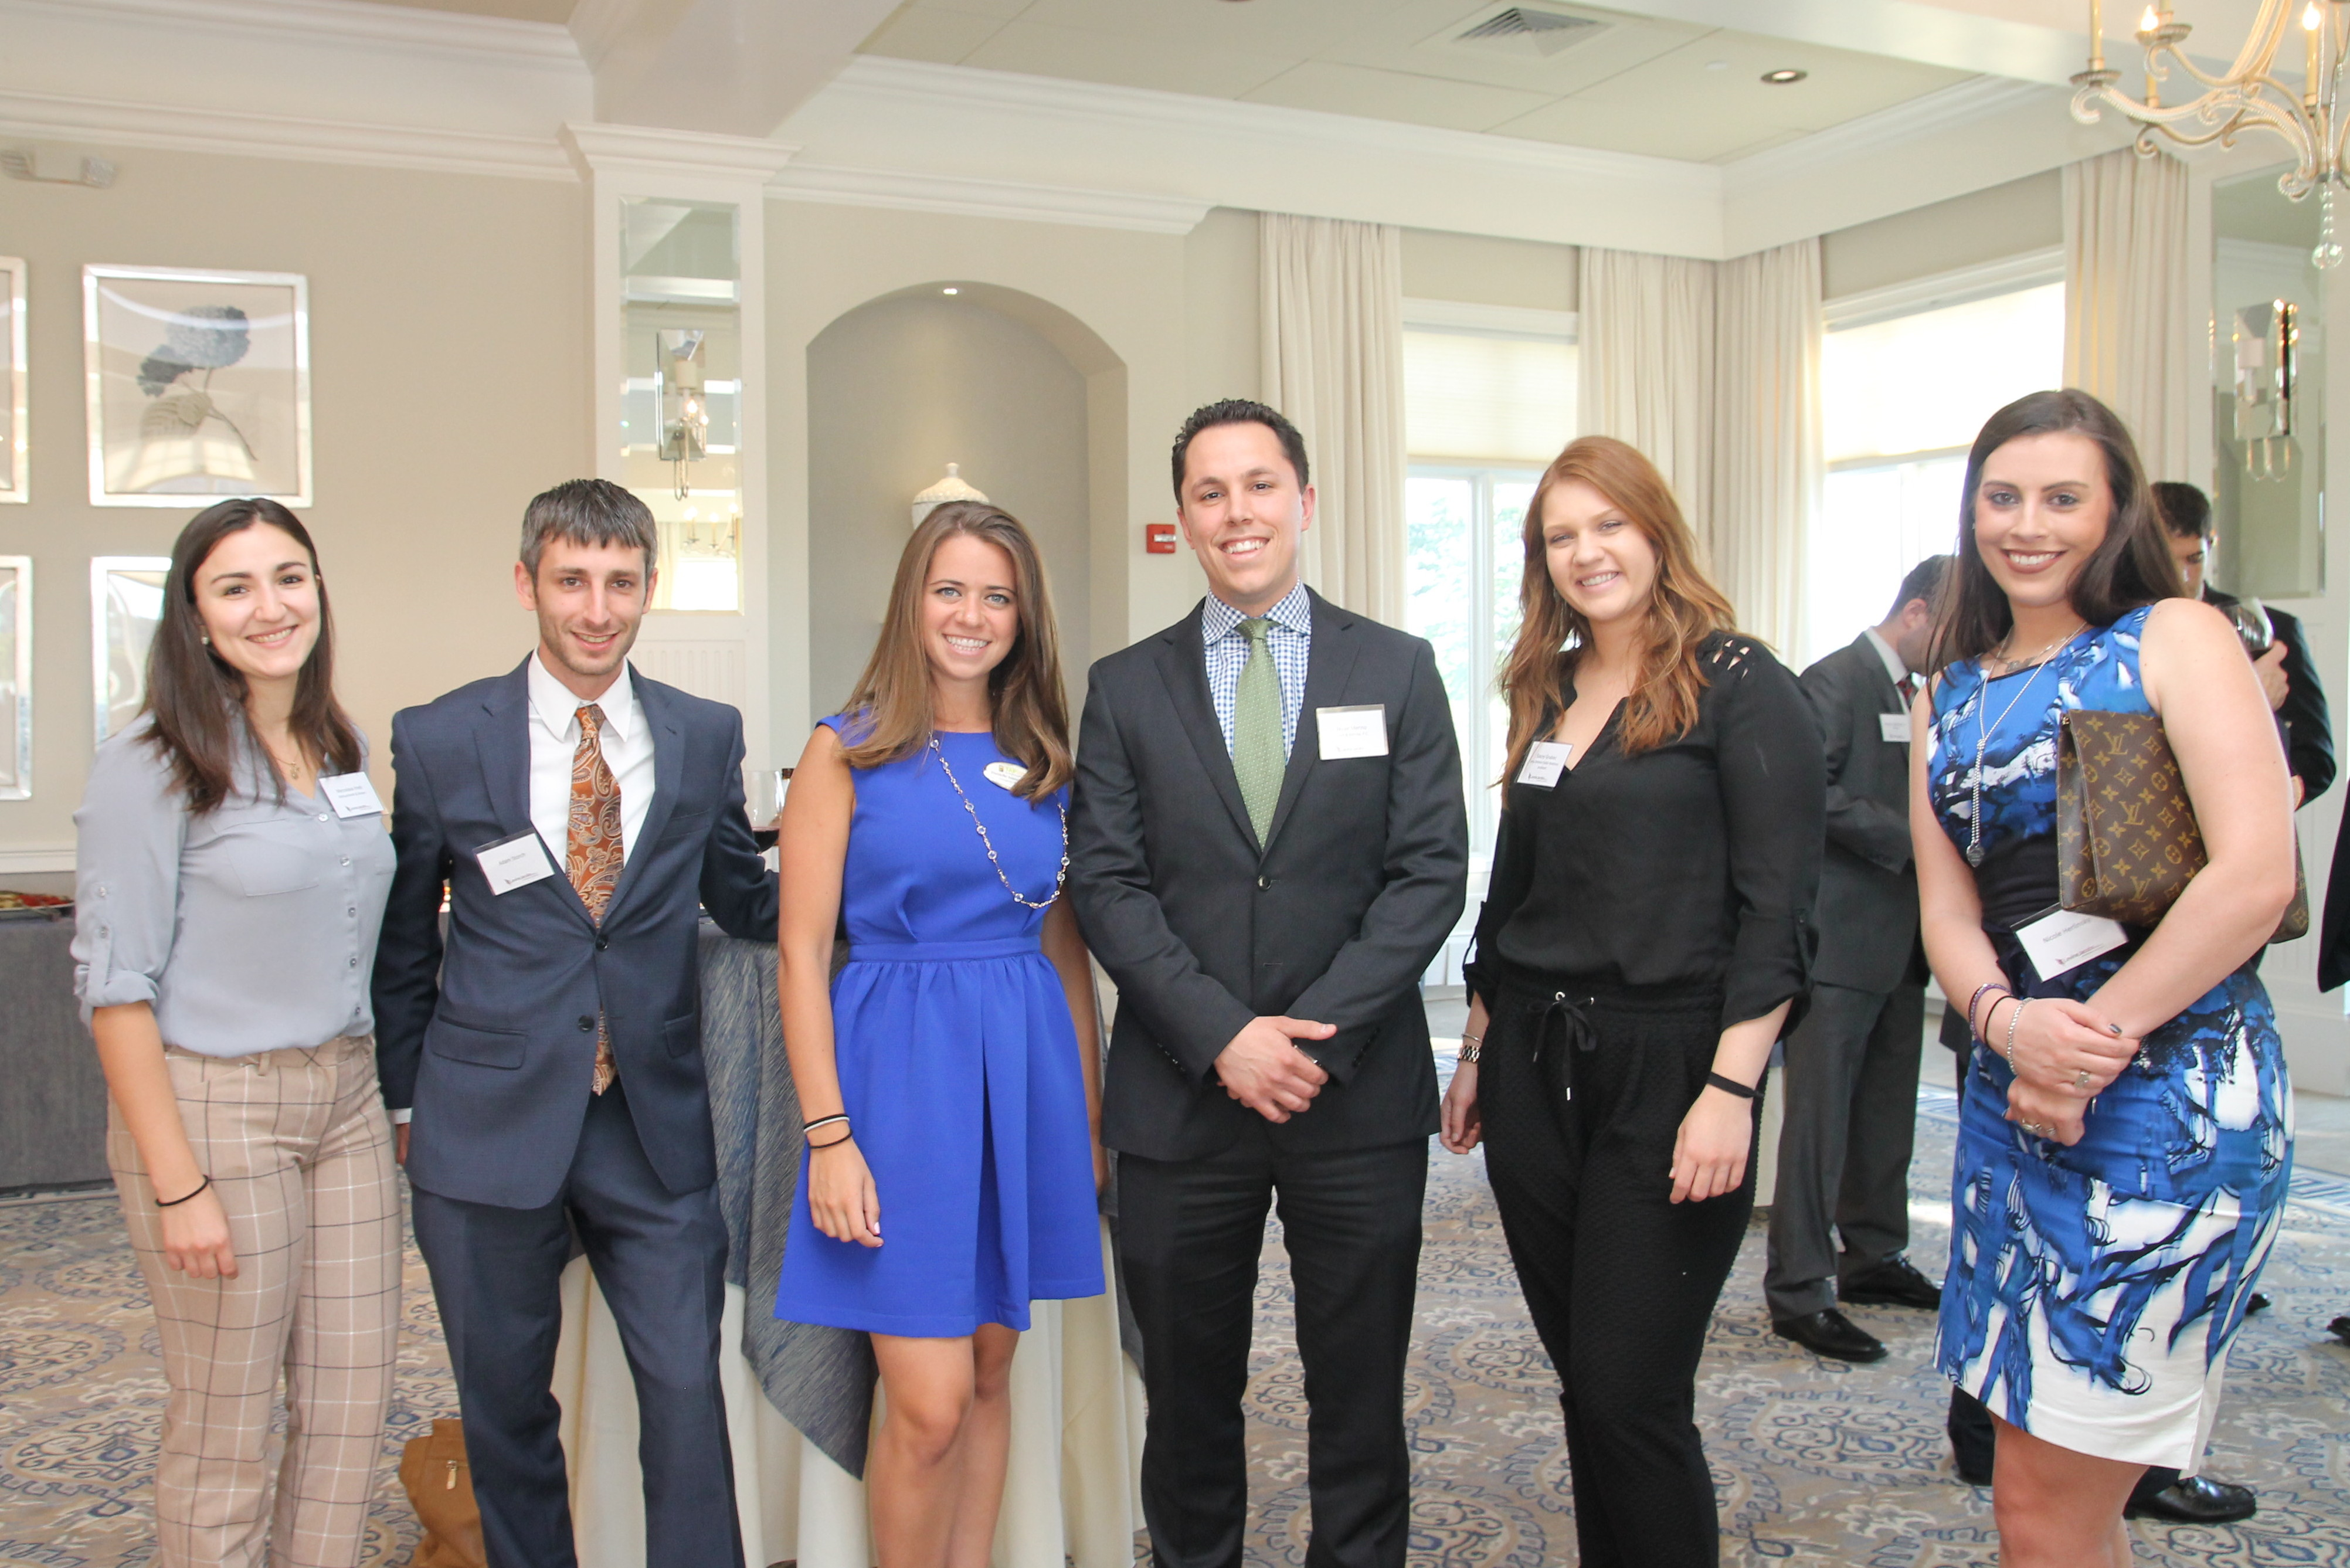 WEST ORANGE, NJ U2014 Young Professionals From Livingston, West Orange,  Maplewood, The Caldwells And Surrounding Areas Recently Attended A  Networking Forum At ...